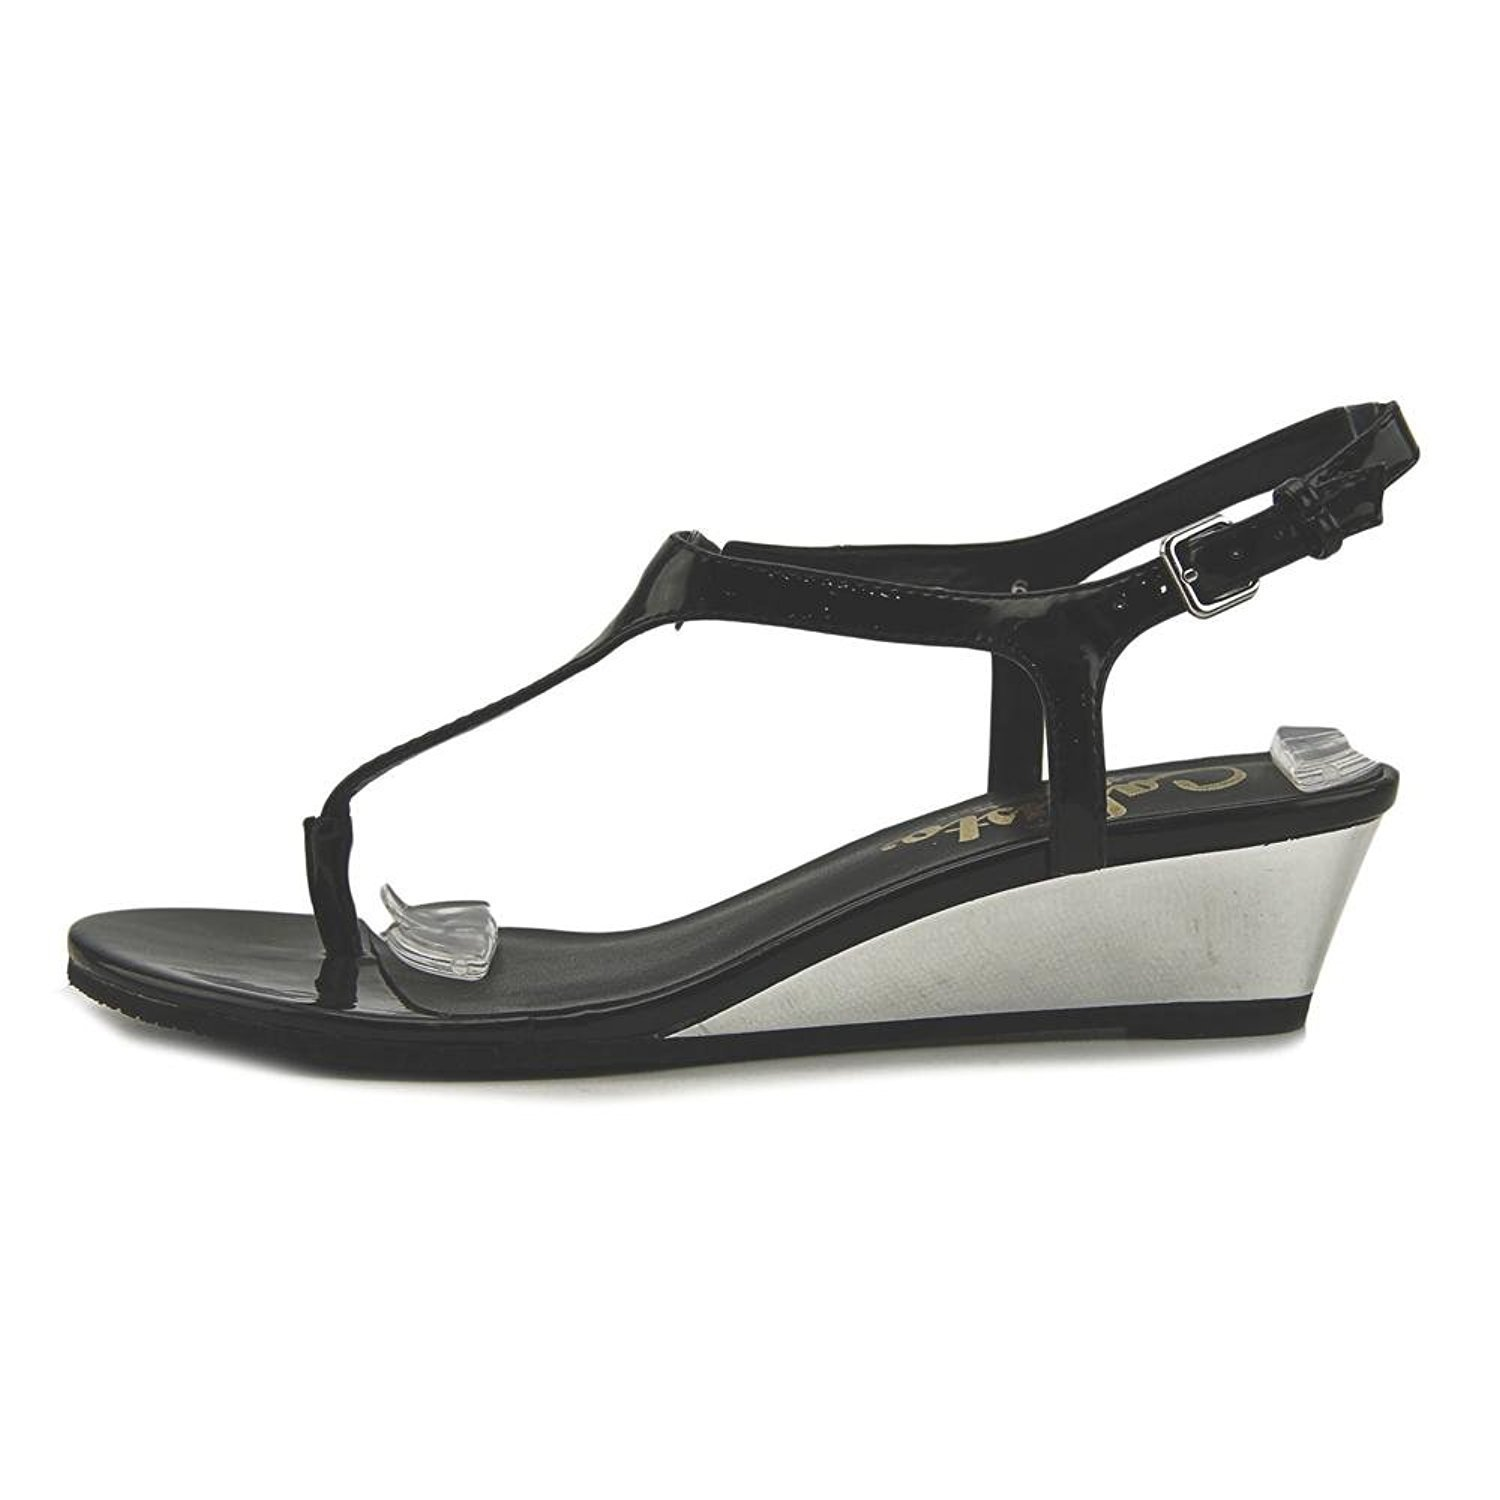 Callisto Womens Spring Open Toe Casual Ankle Strap Sandals B07DPKWCG8 5 B(M) US|Black Patent